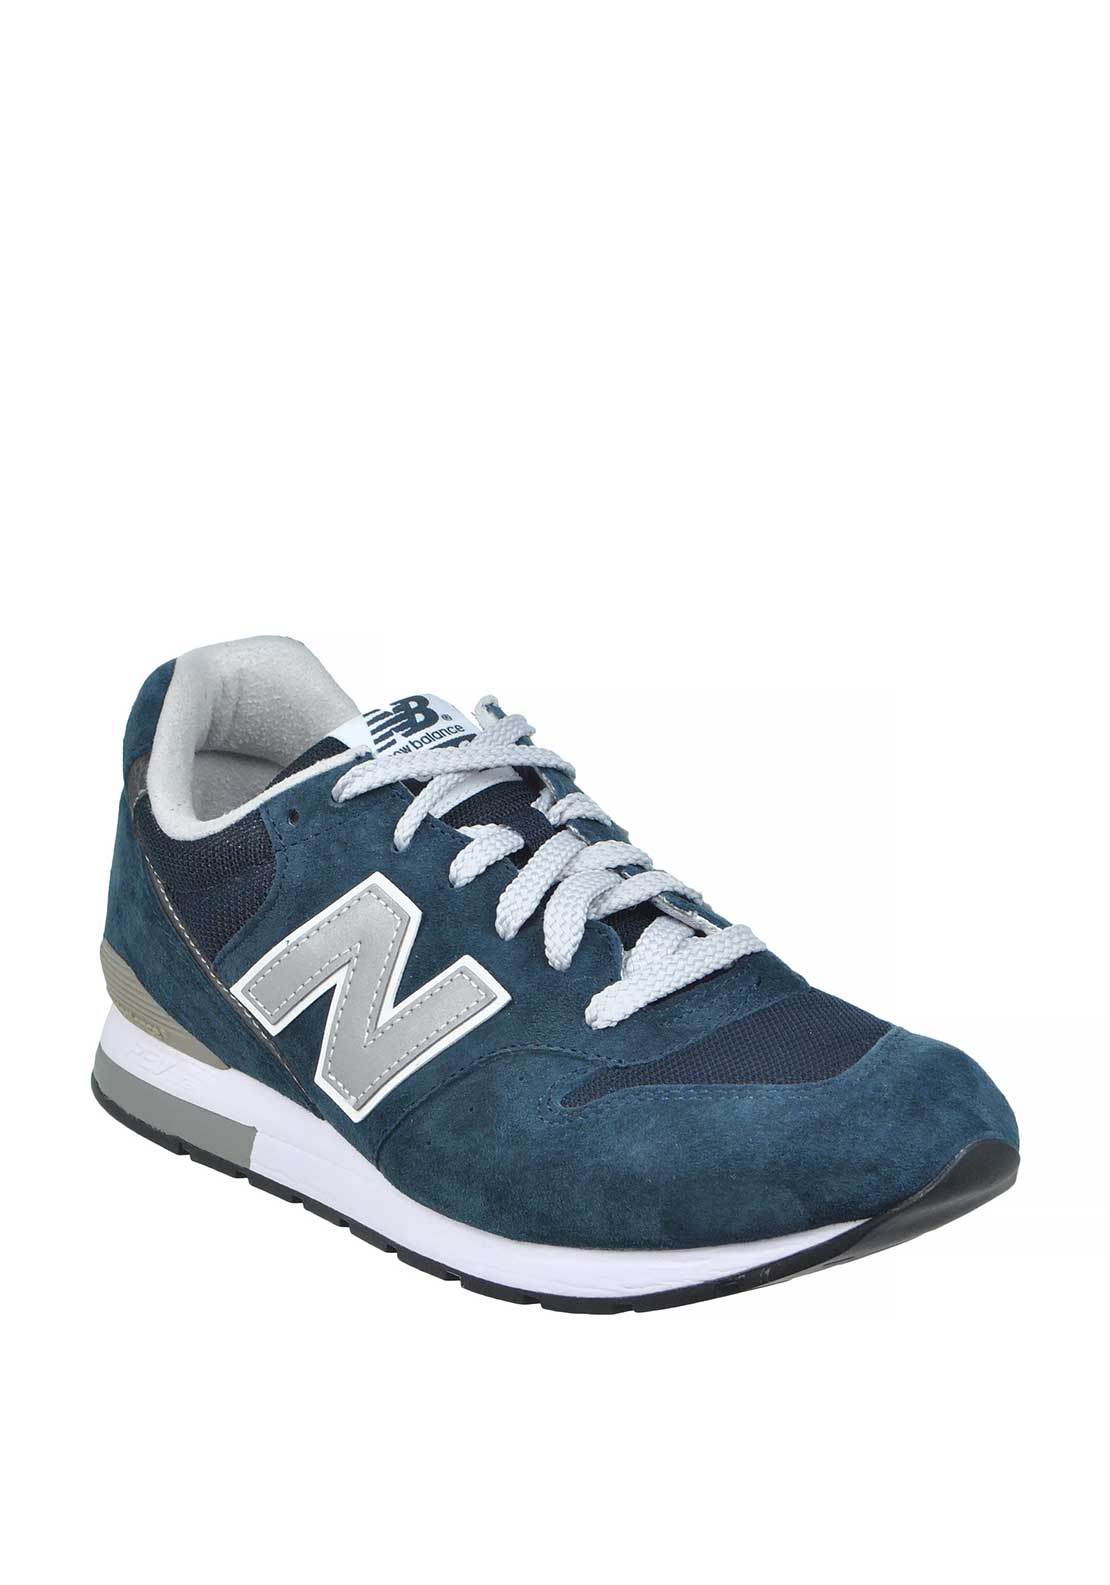 New Balance Mens Revlite 996 Fashion Runners, Navy